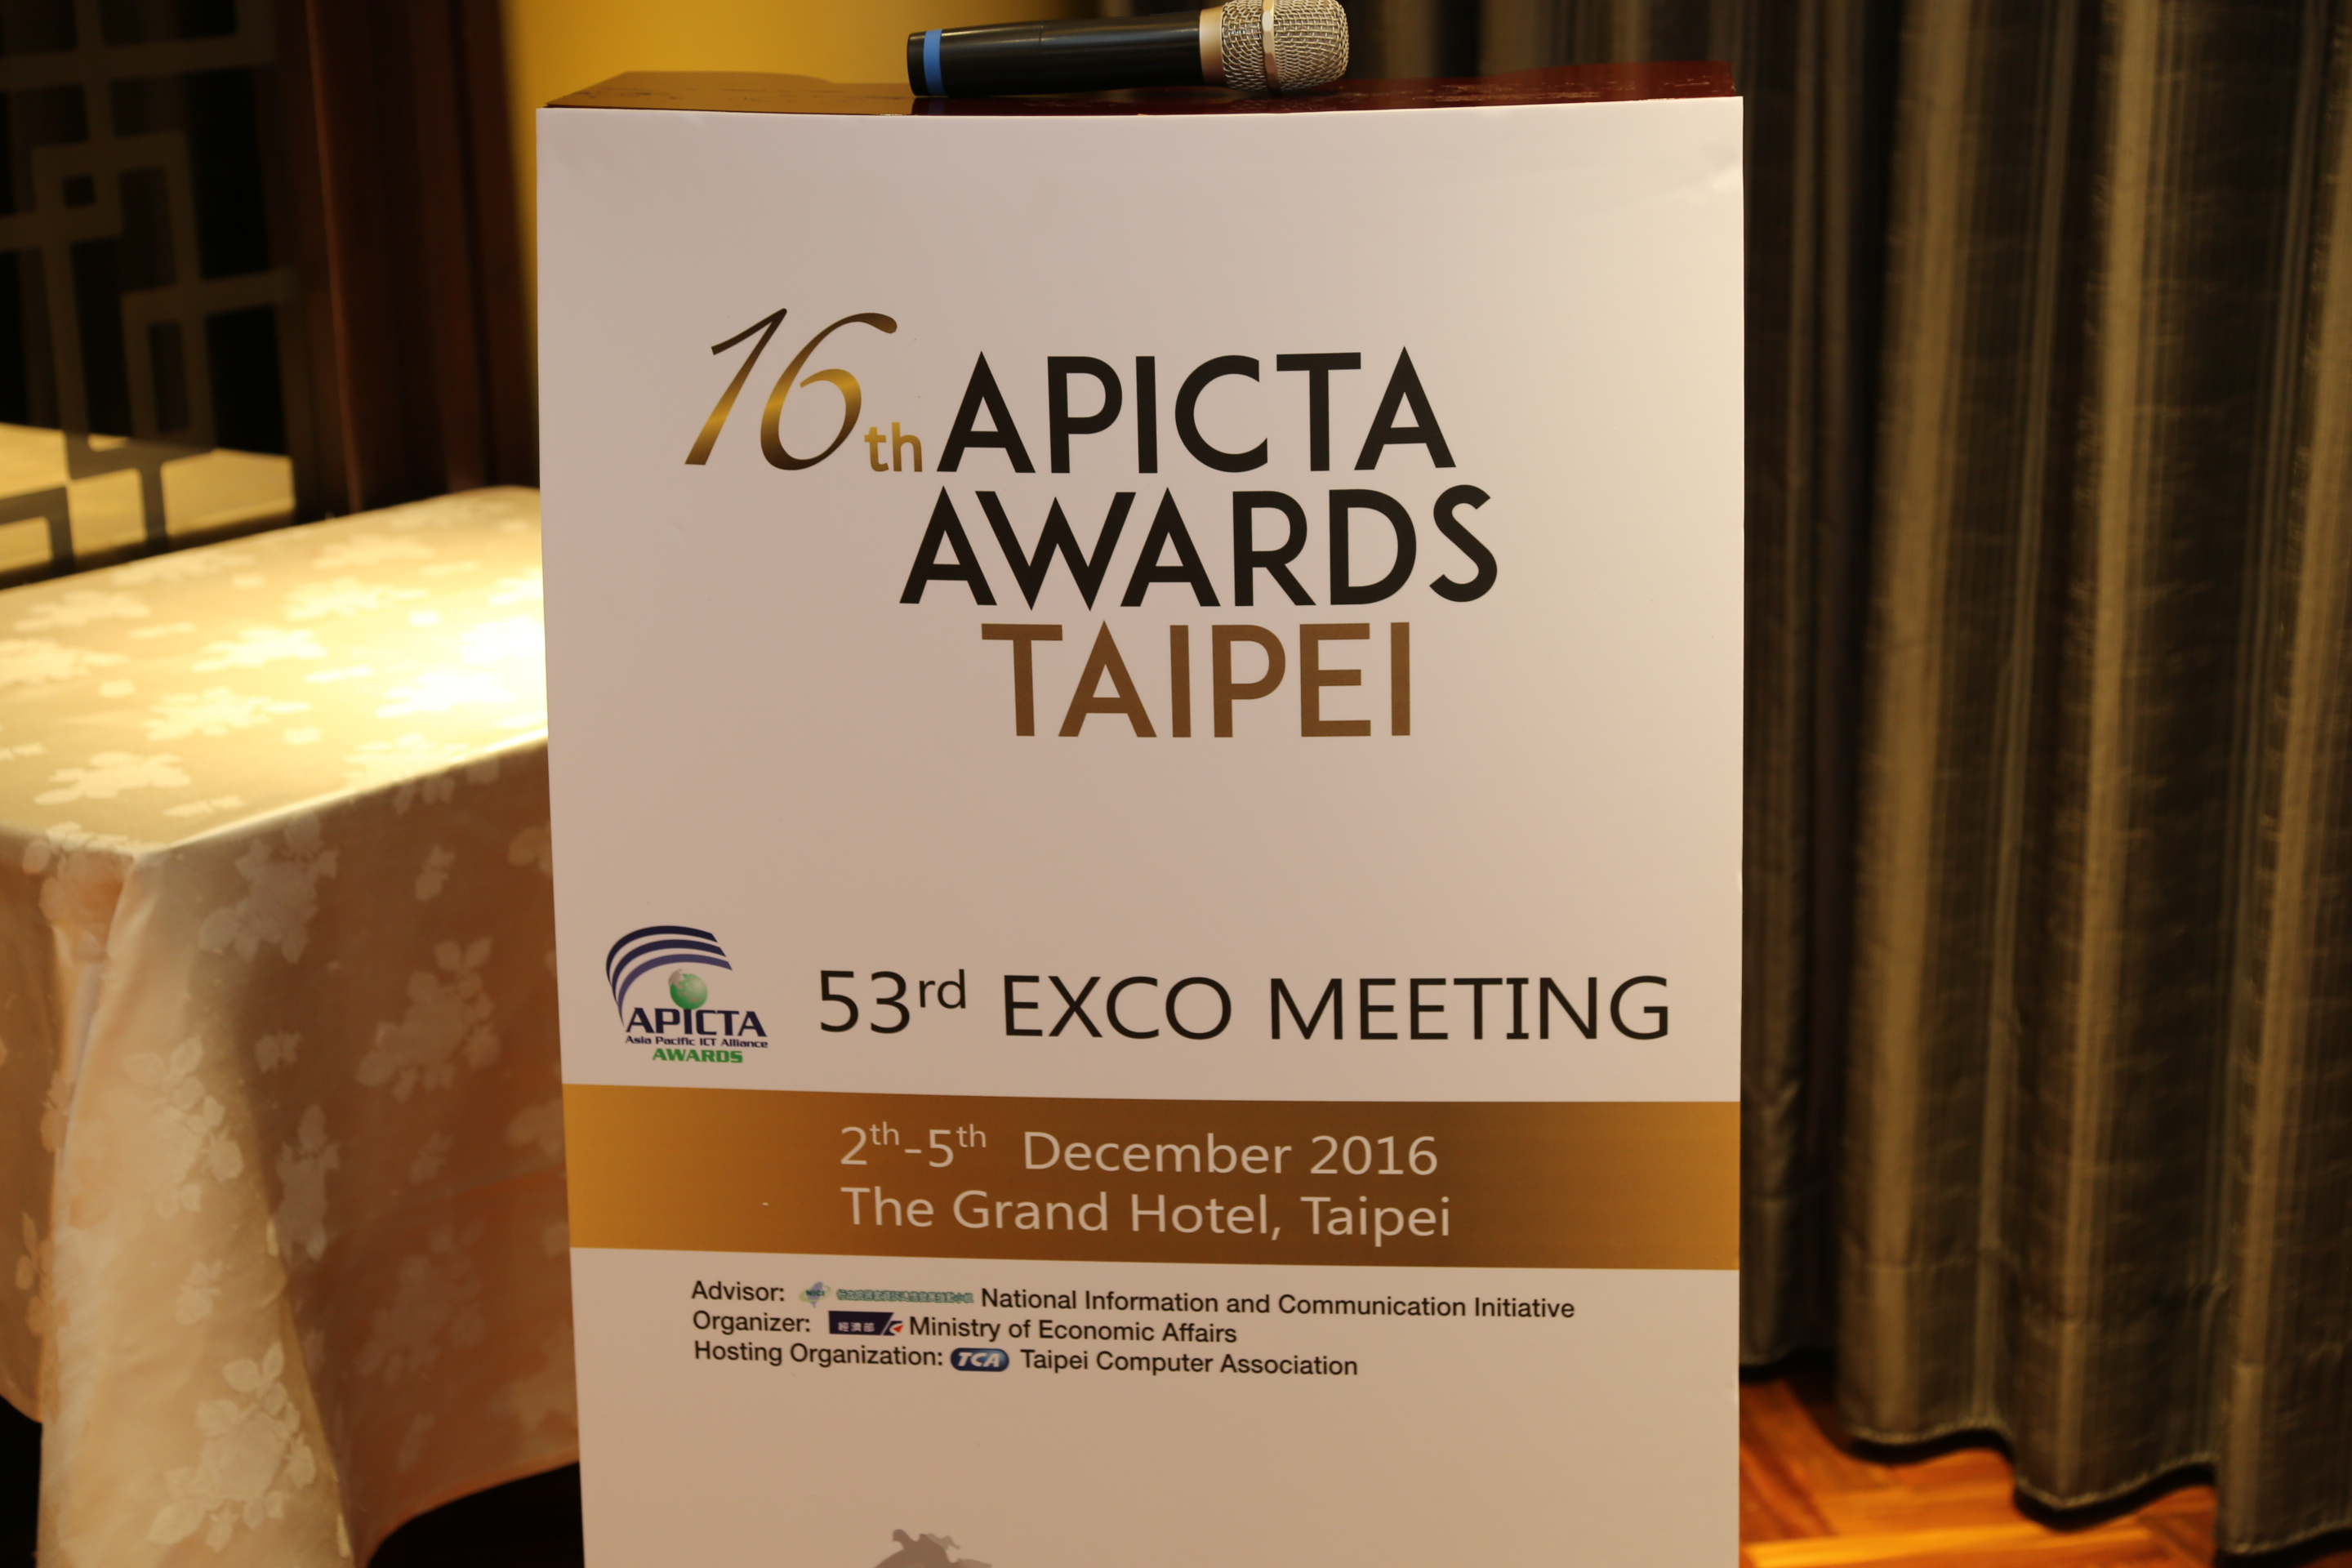 APICTA Awards@ Taipei